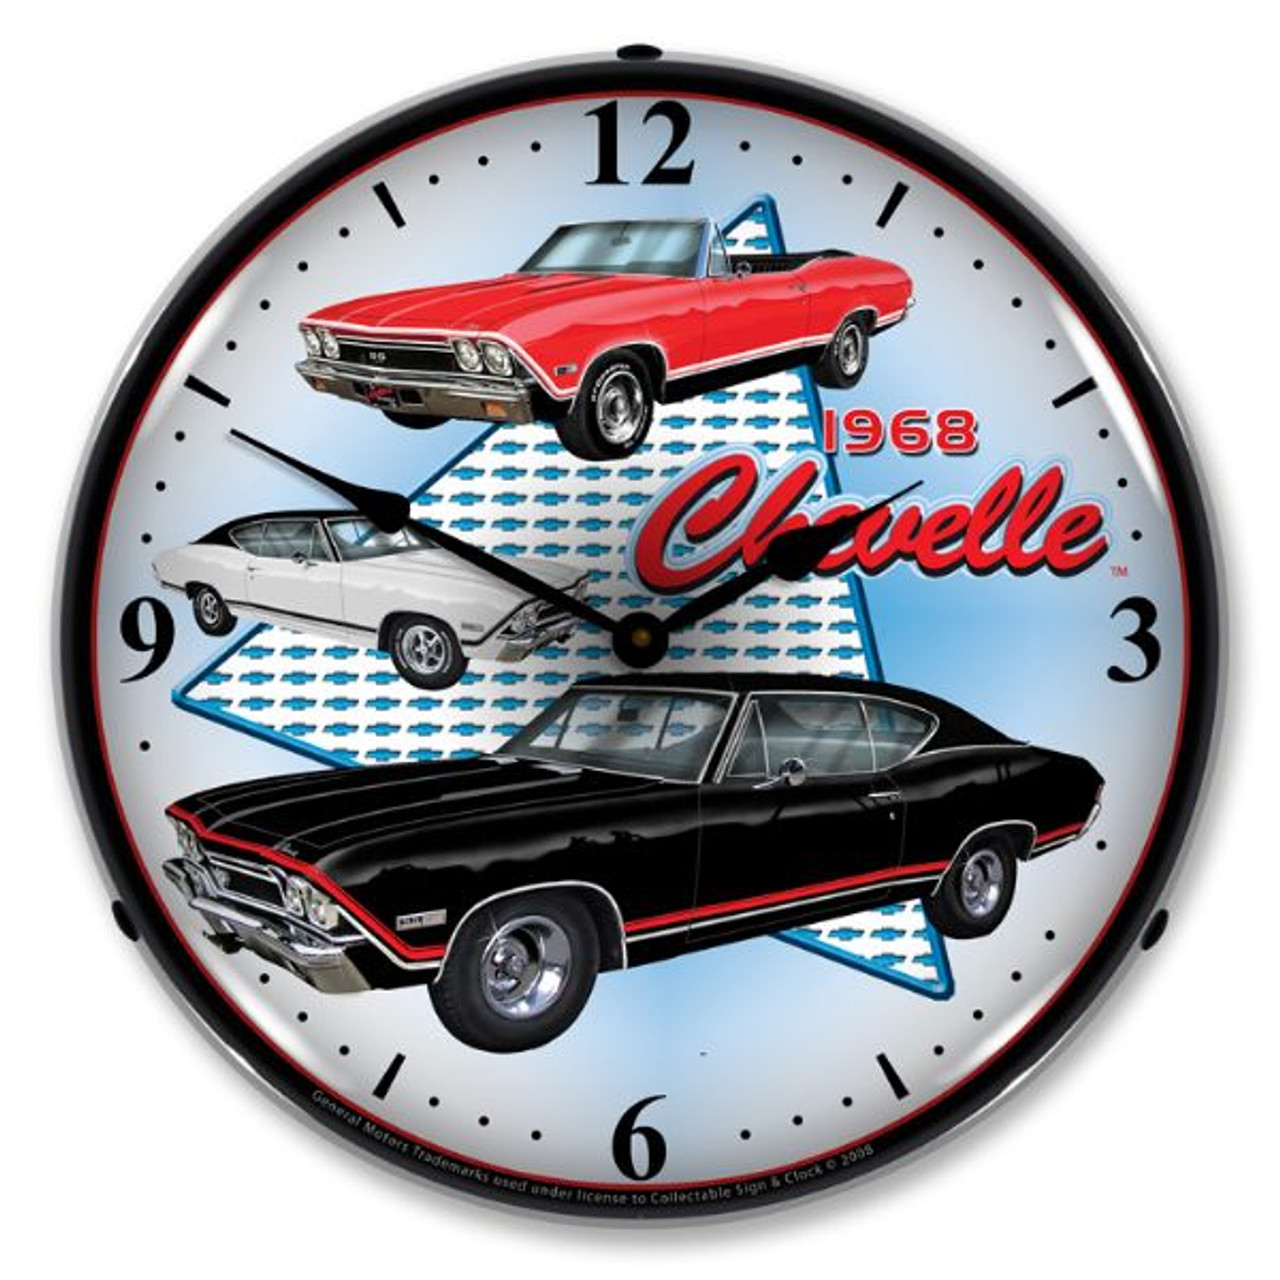 1968 Chevelle Lighted Wall Clock